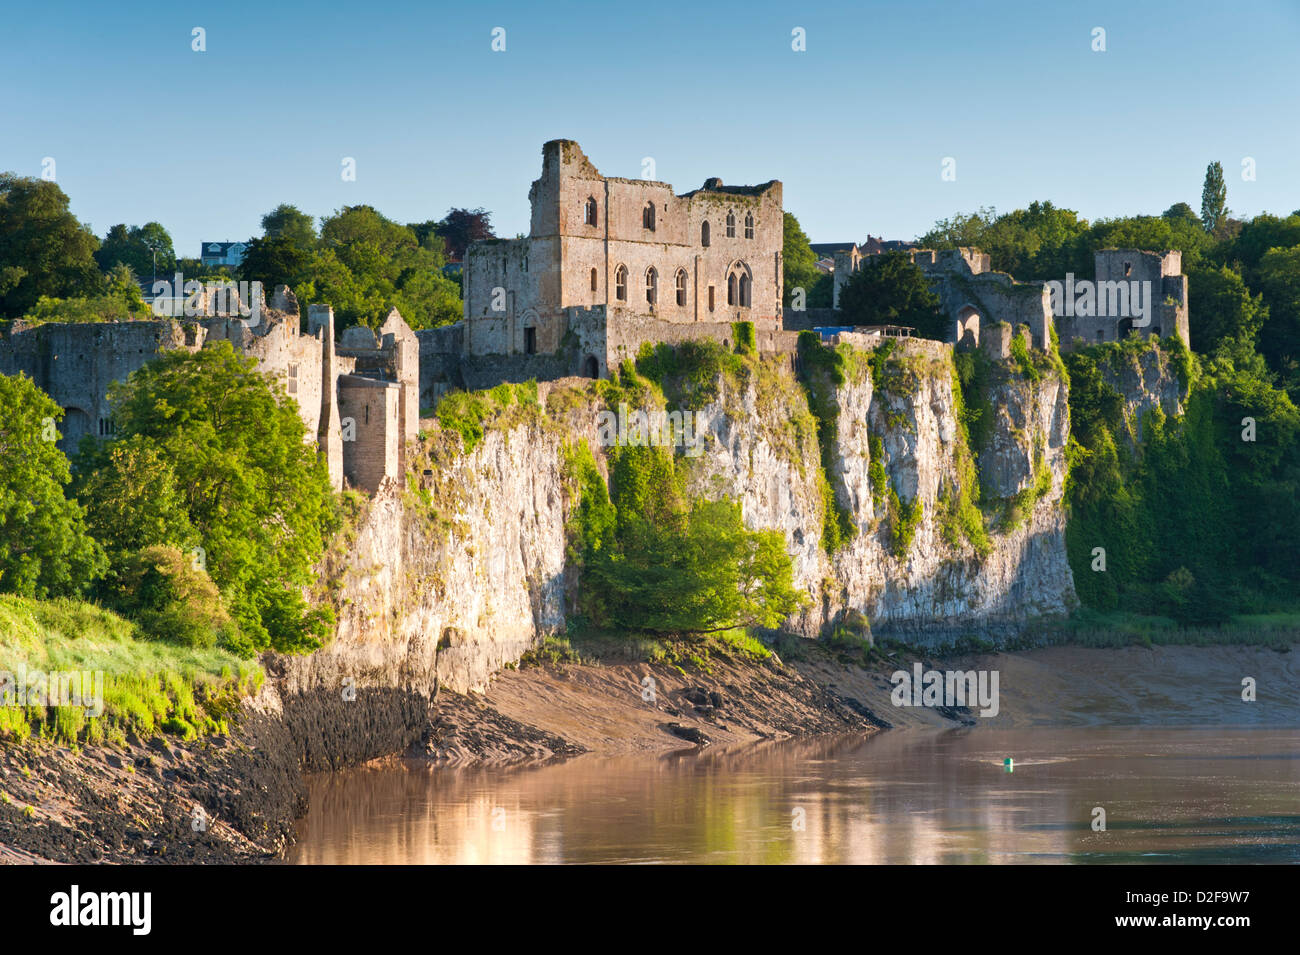 Chepstow Castle and the River Wye, Chepstow, Monmouthshire, South Wales, UK Stock Photo